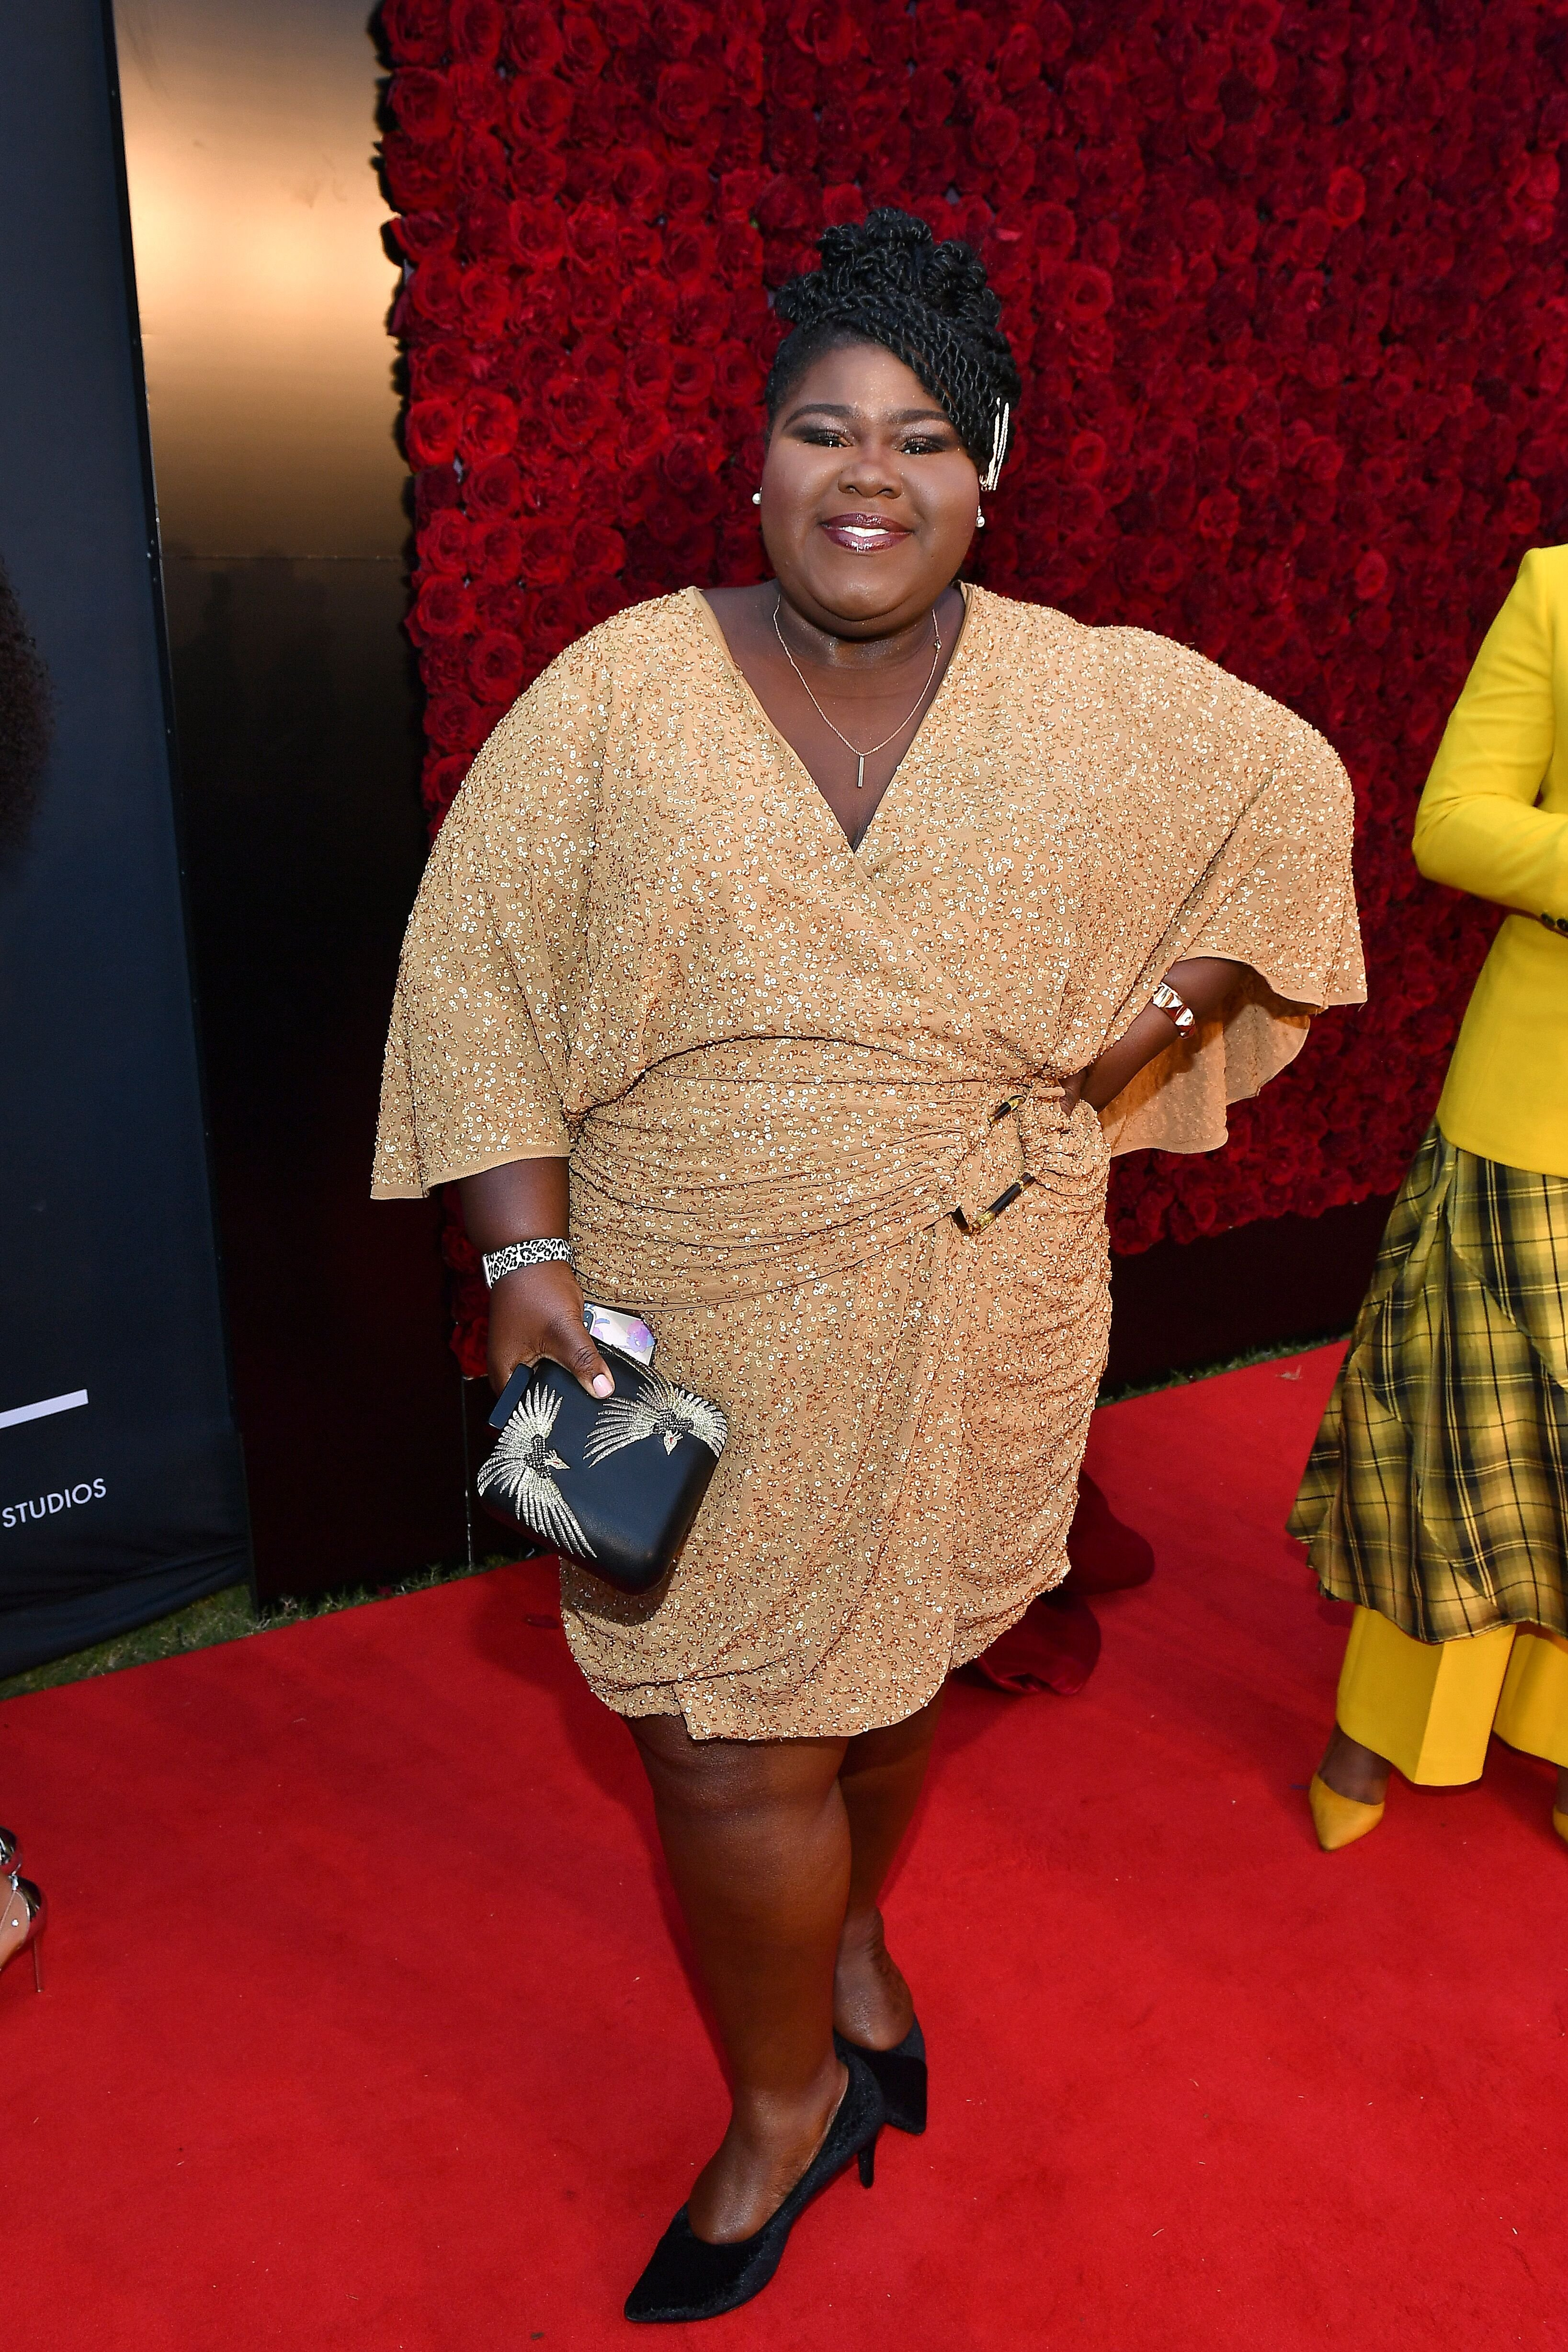 Gabourey Sidibe at Tyler Perry Studios grand opening gala on October 05, 2019 in Atlanta, Georgia | Photo: Getty Images